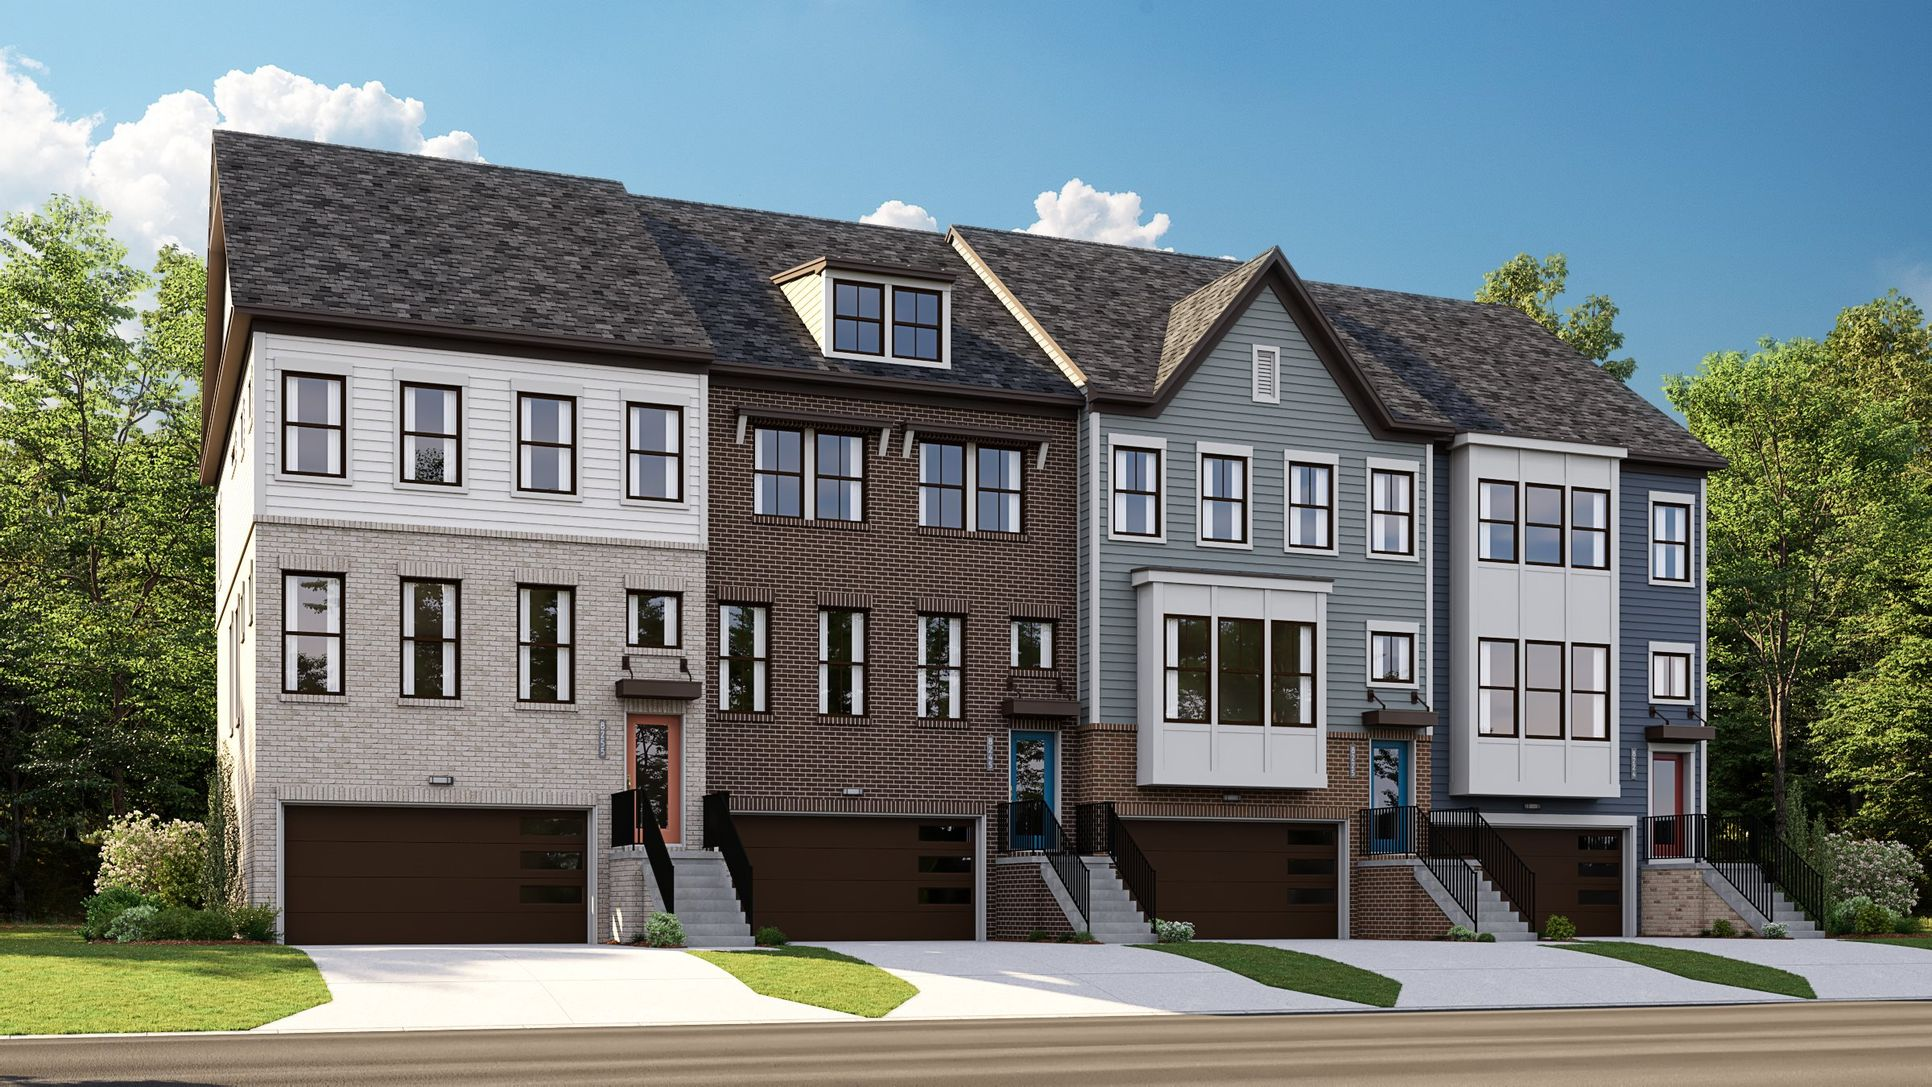 Row of townhomes in the Ellicott exterior